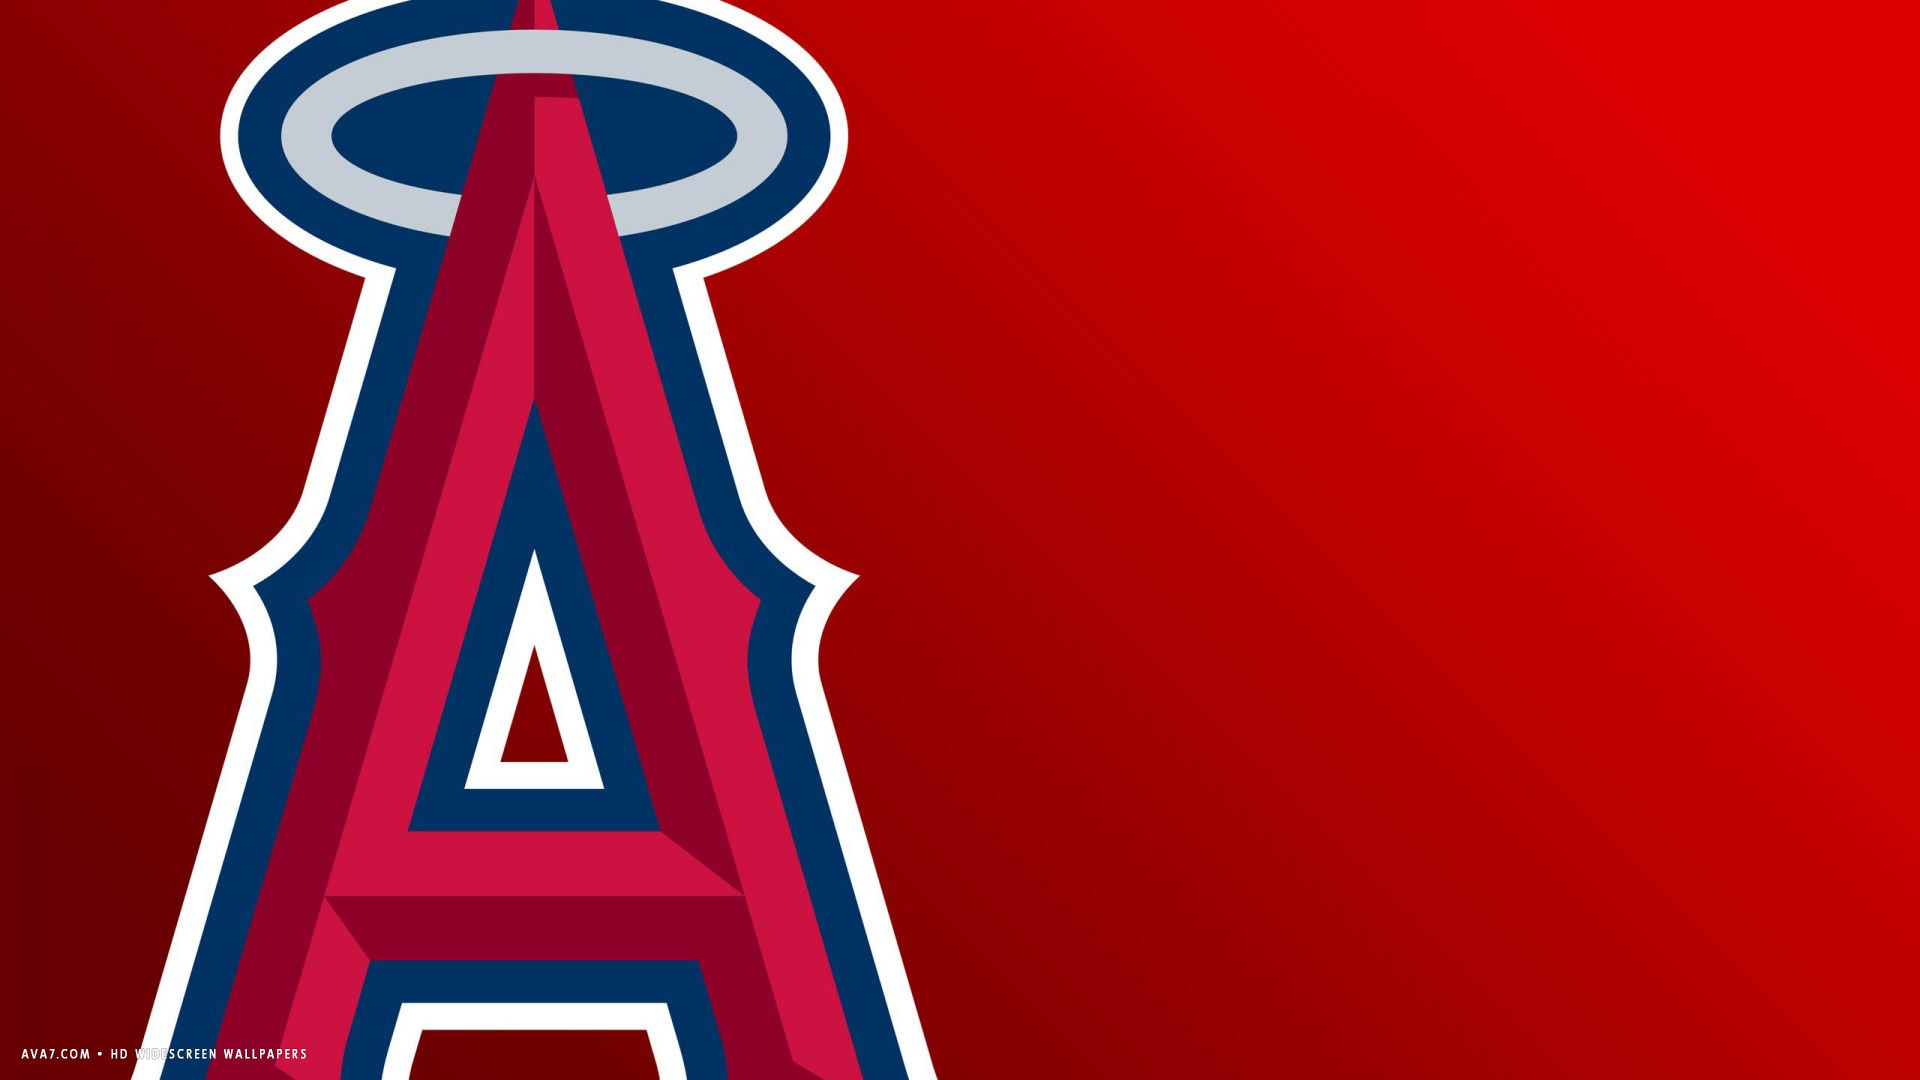 los angeles angels of anaheim mlb baseball team hd widescreen wallpaper